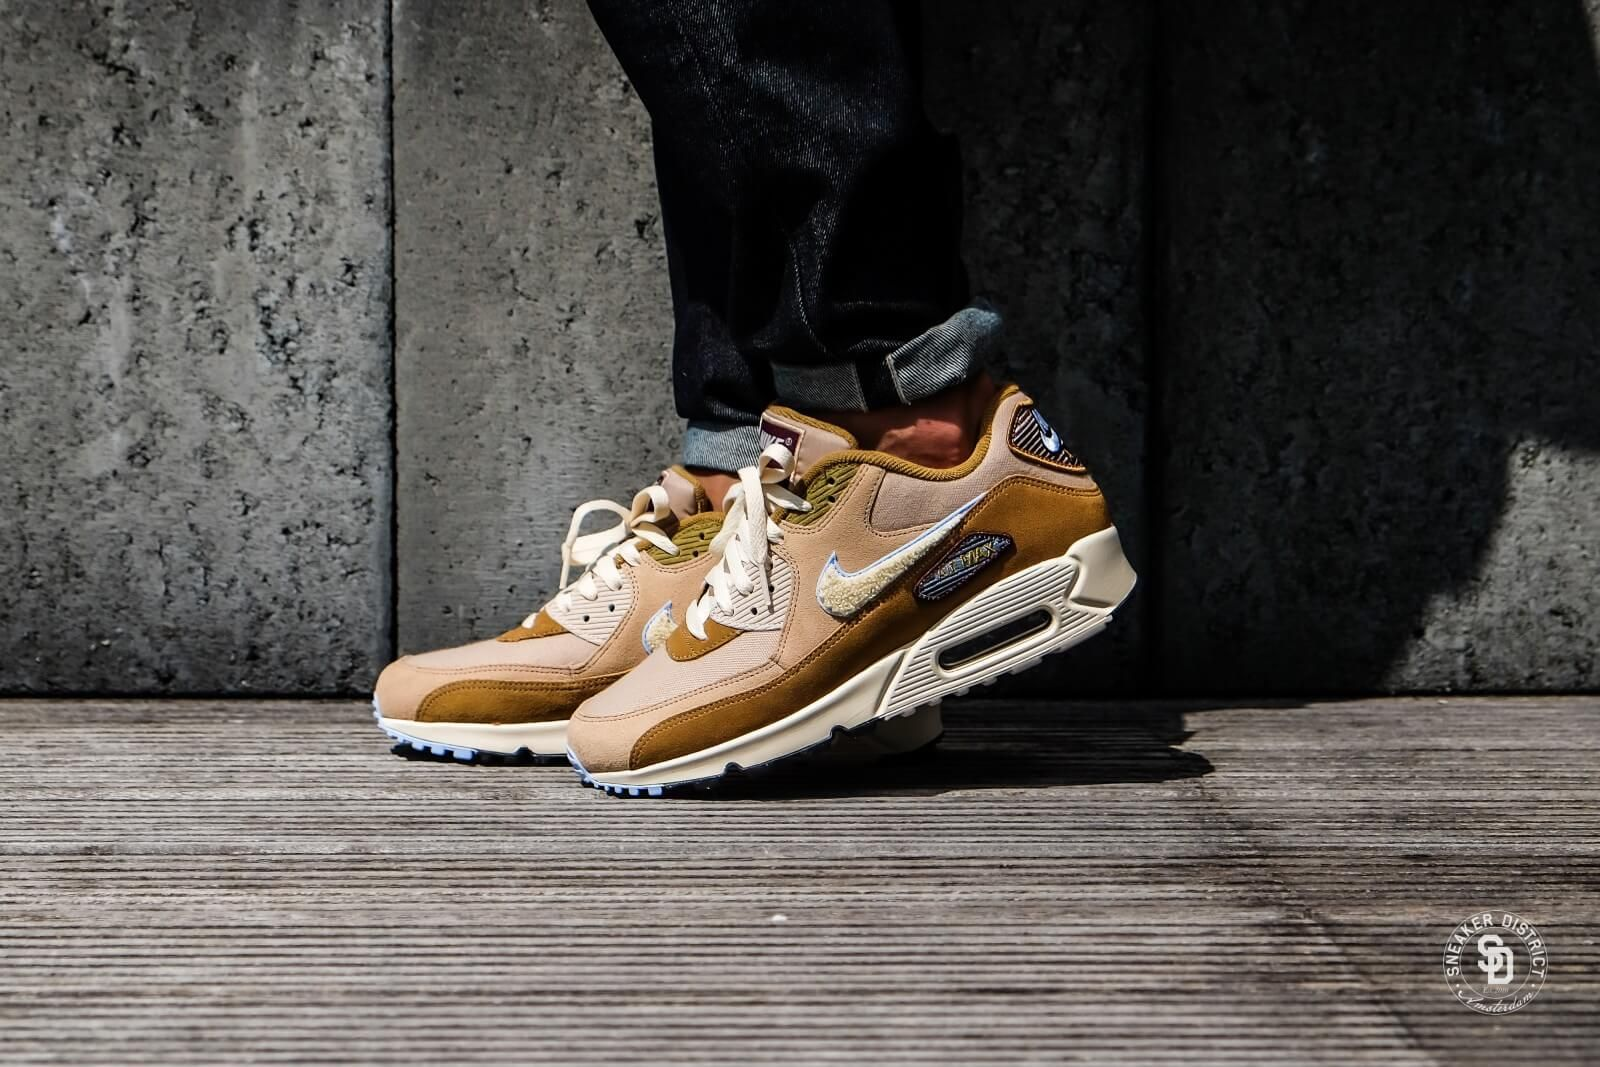 Nike Air Max 90 Premium SE Muted Sneaker District